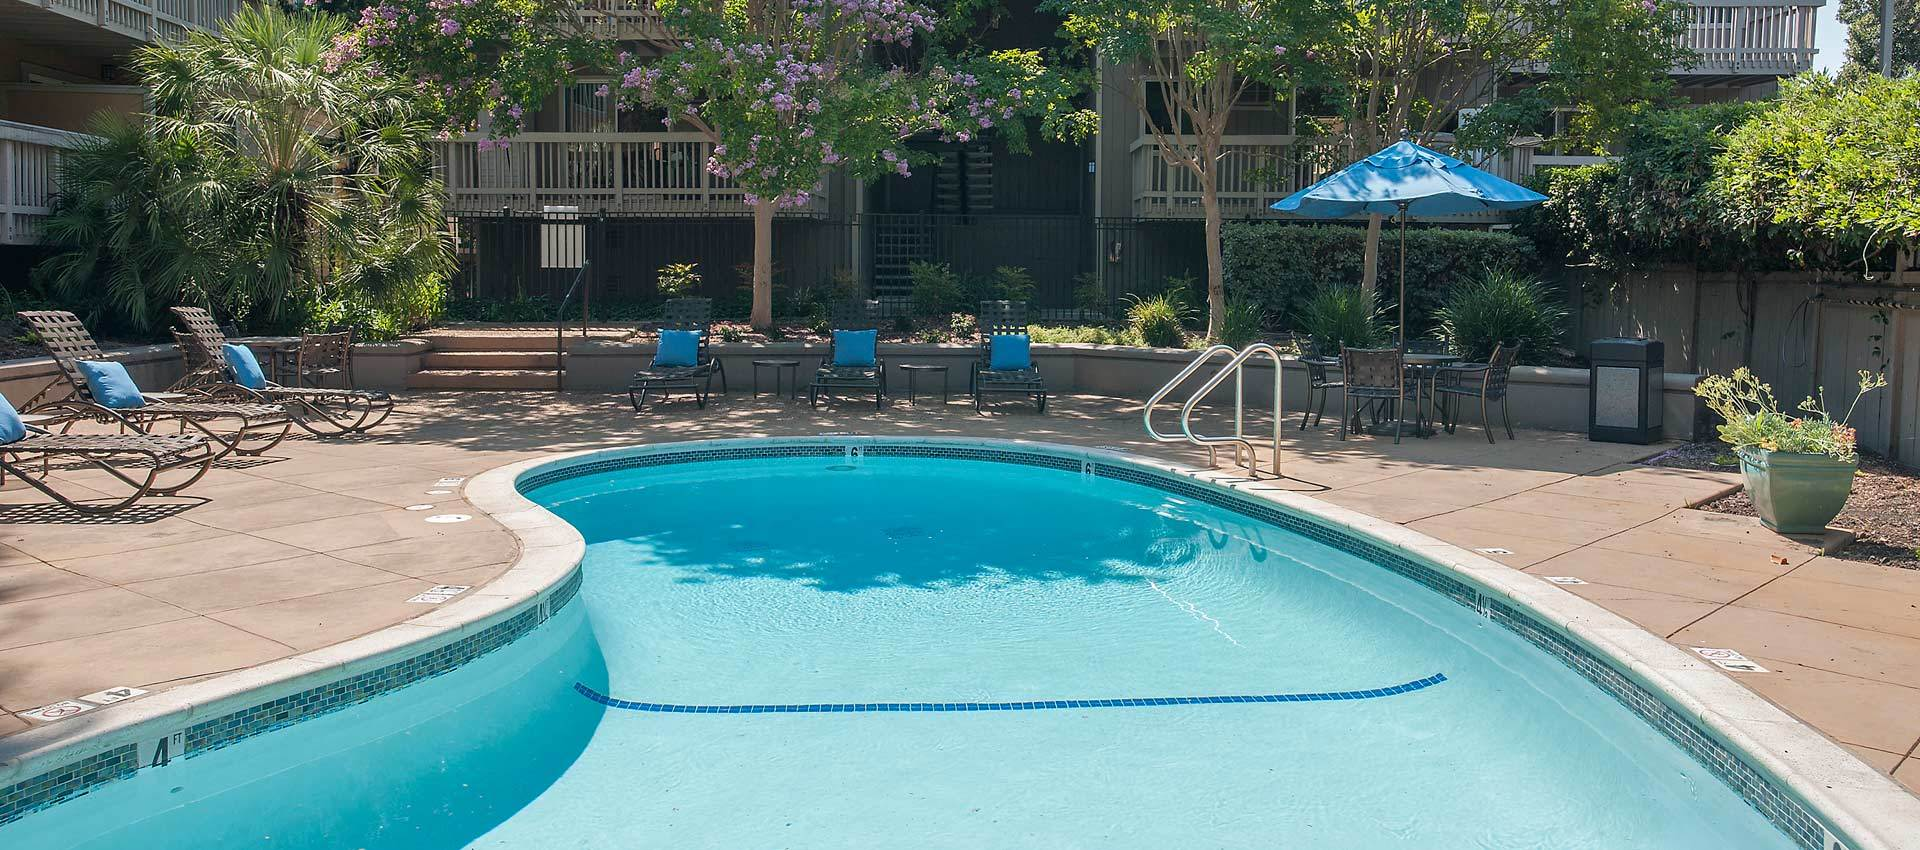 Pool Area at apartments in Martinez, CA